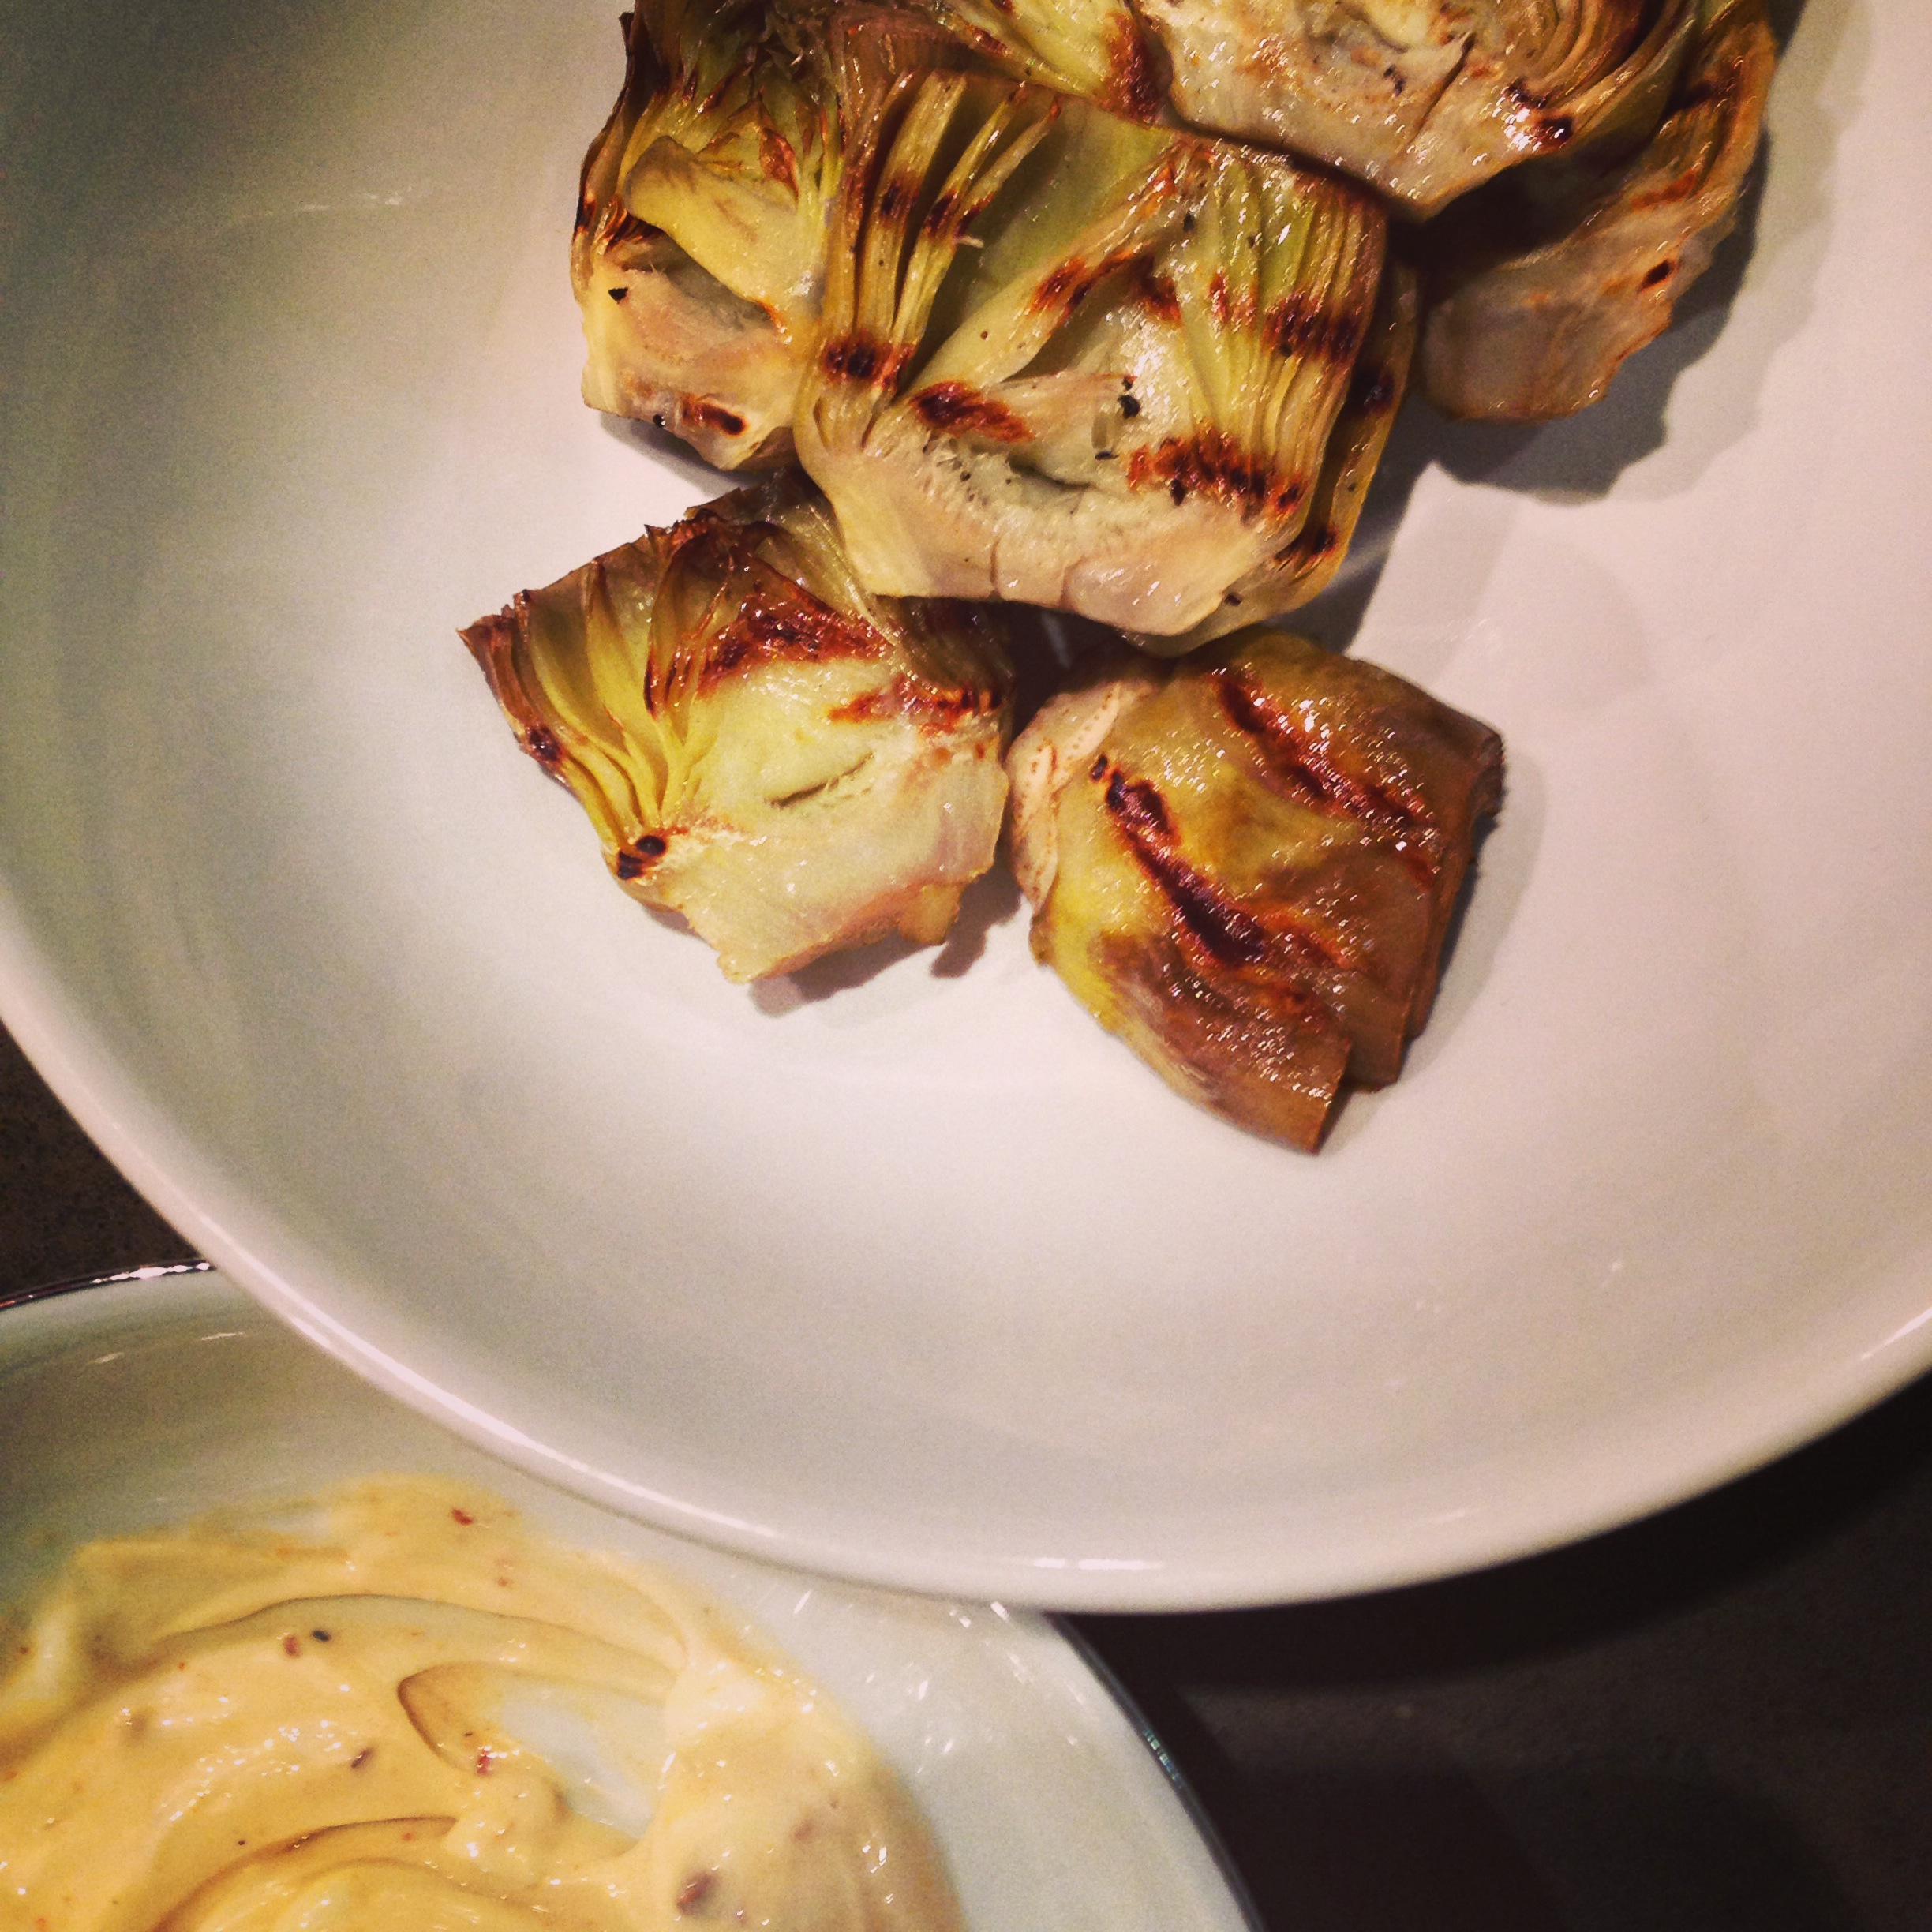 Griddled Artichoke with Chipolte Mayo